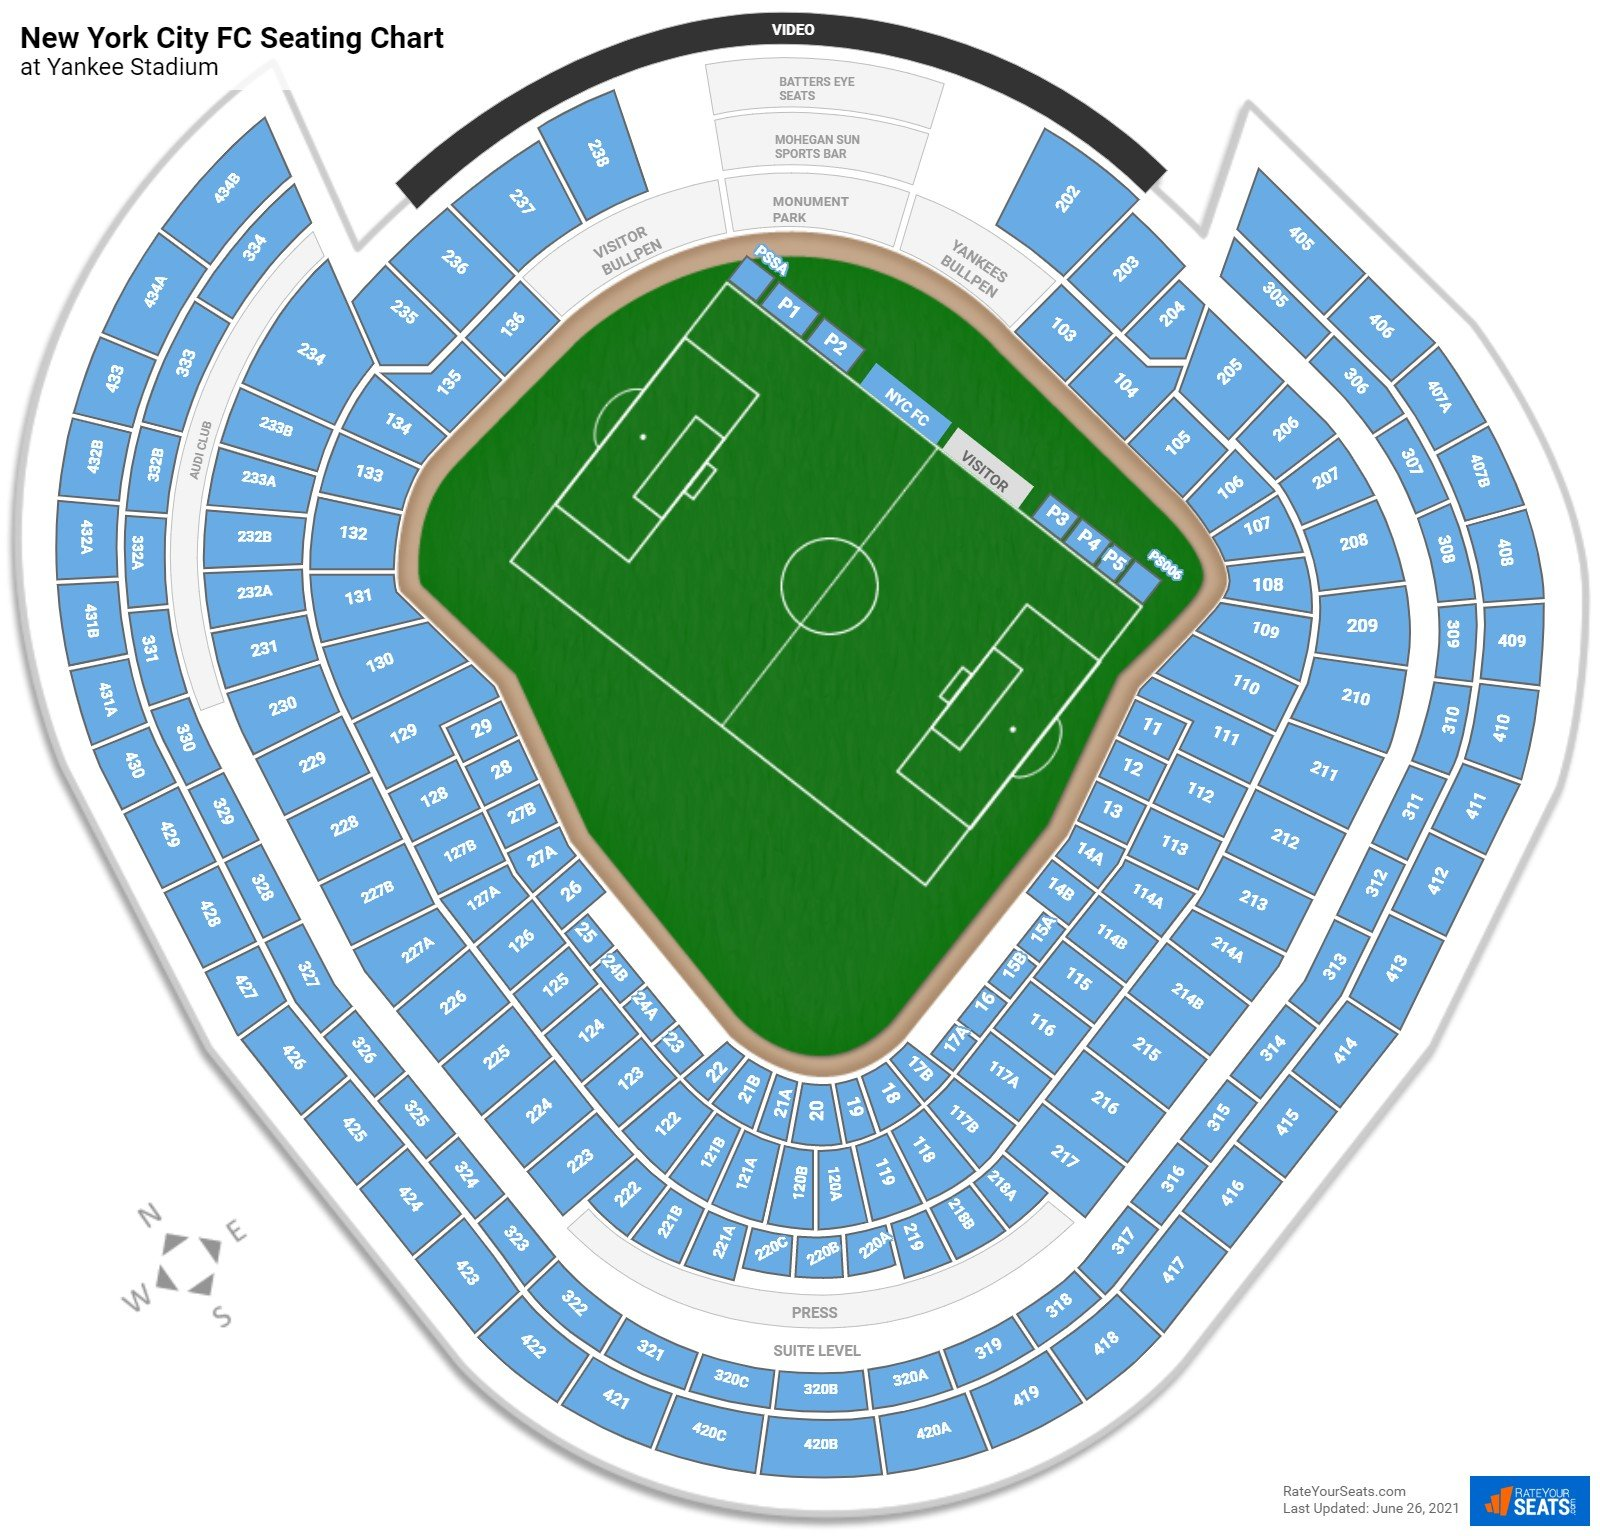 New York City FC Seating Chart